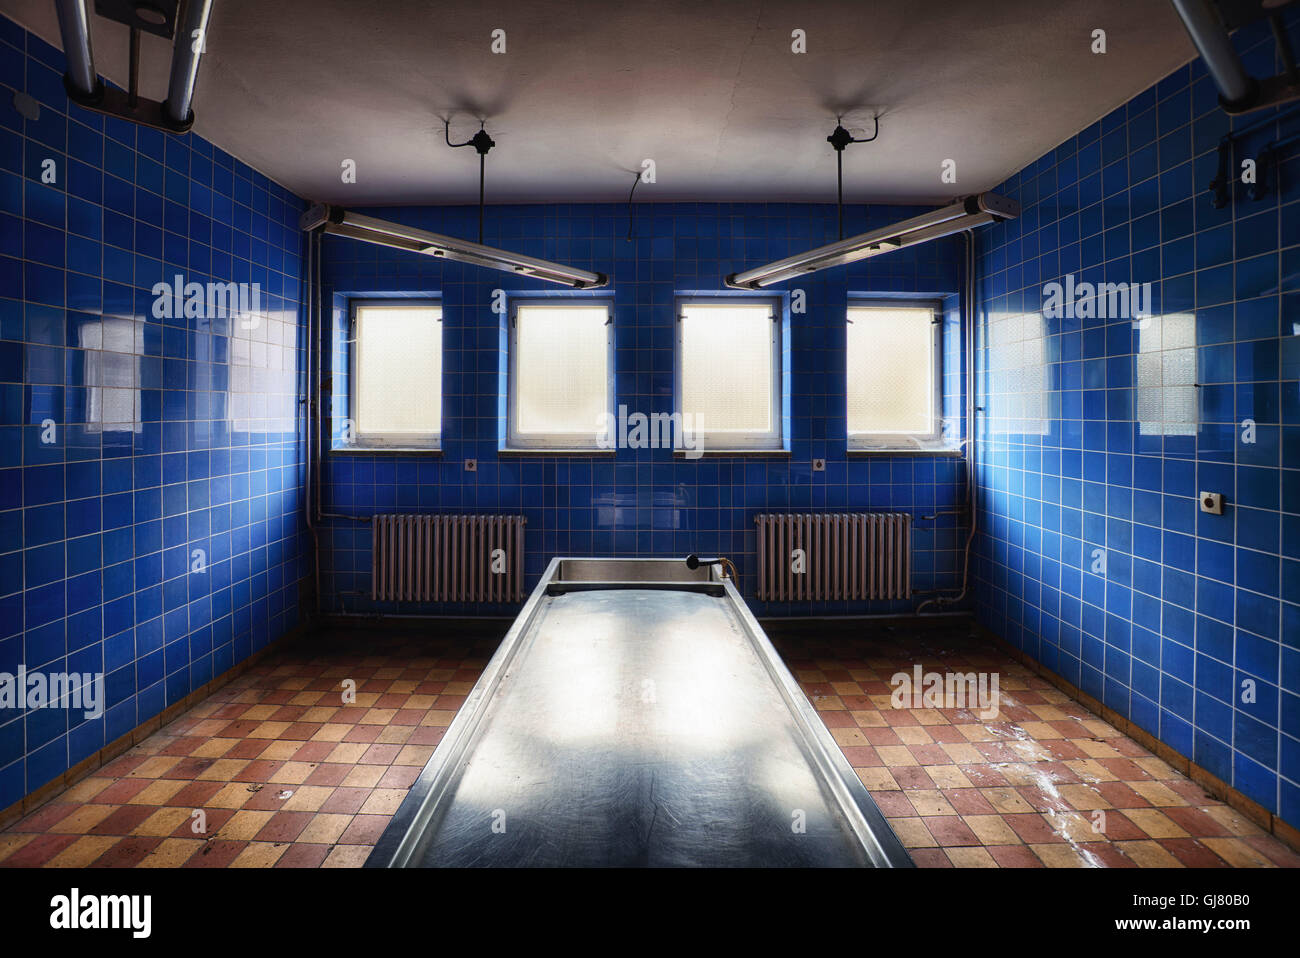 former pathology with blue tiles - Stock Image